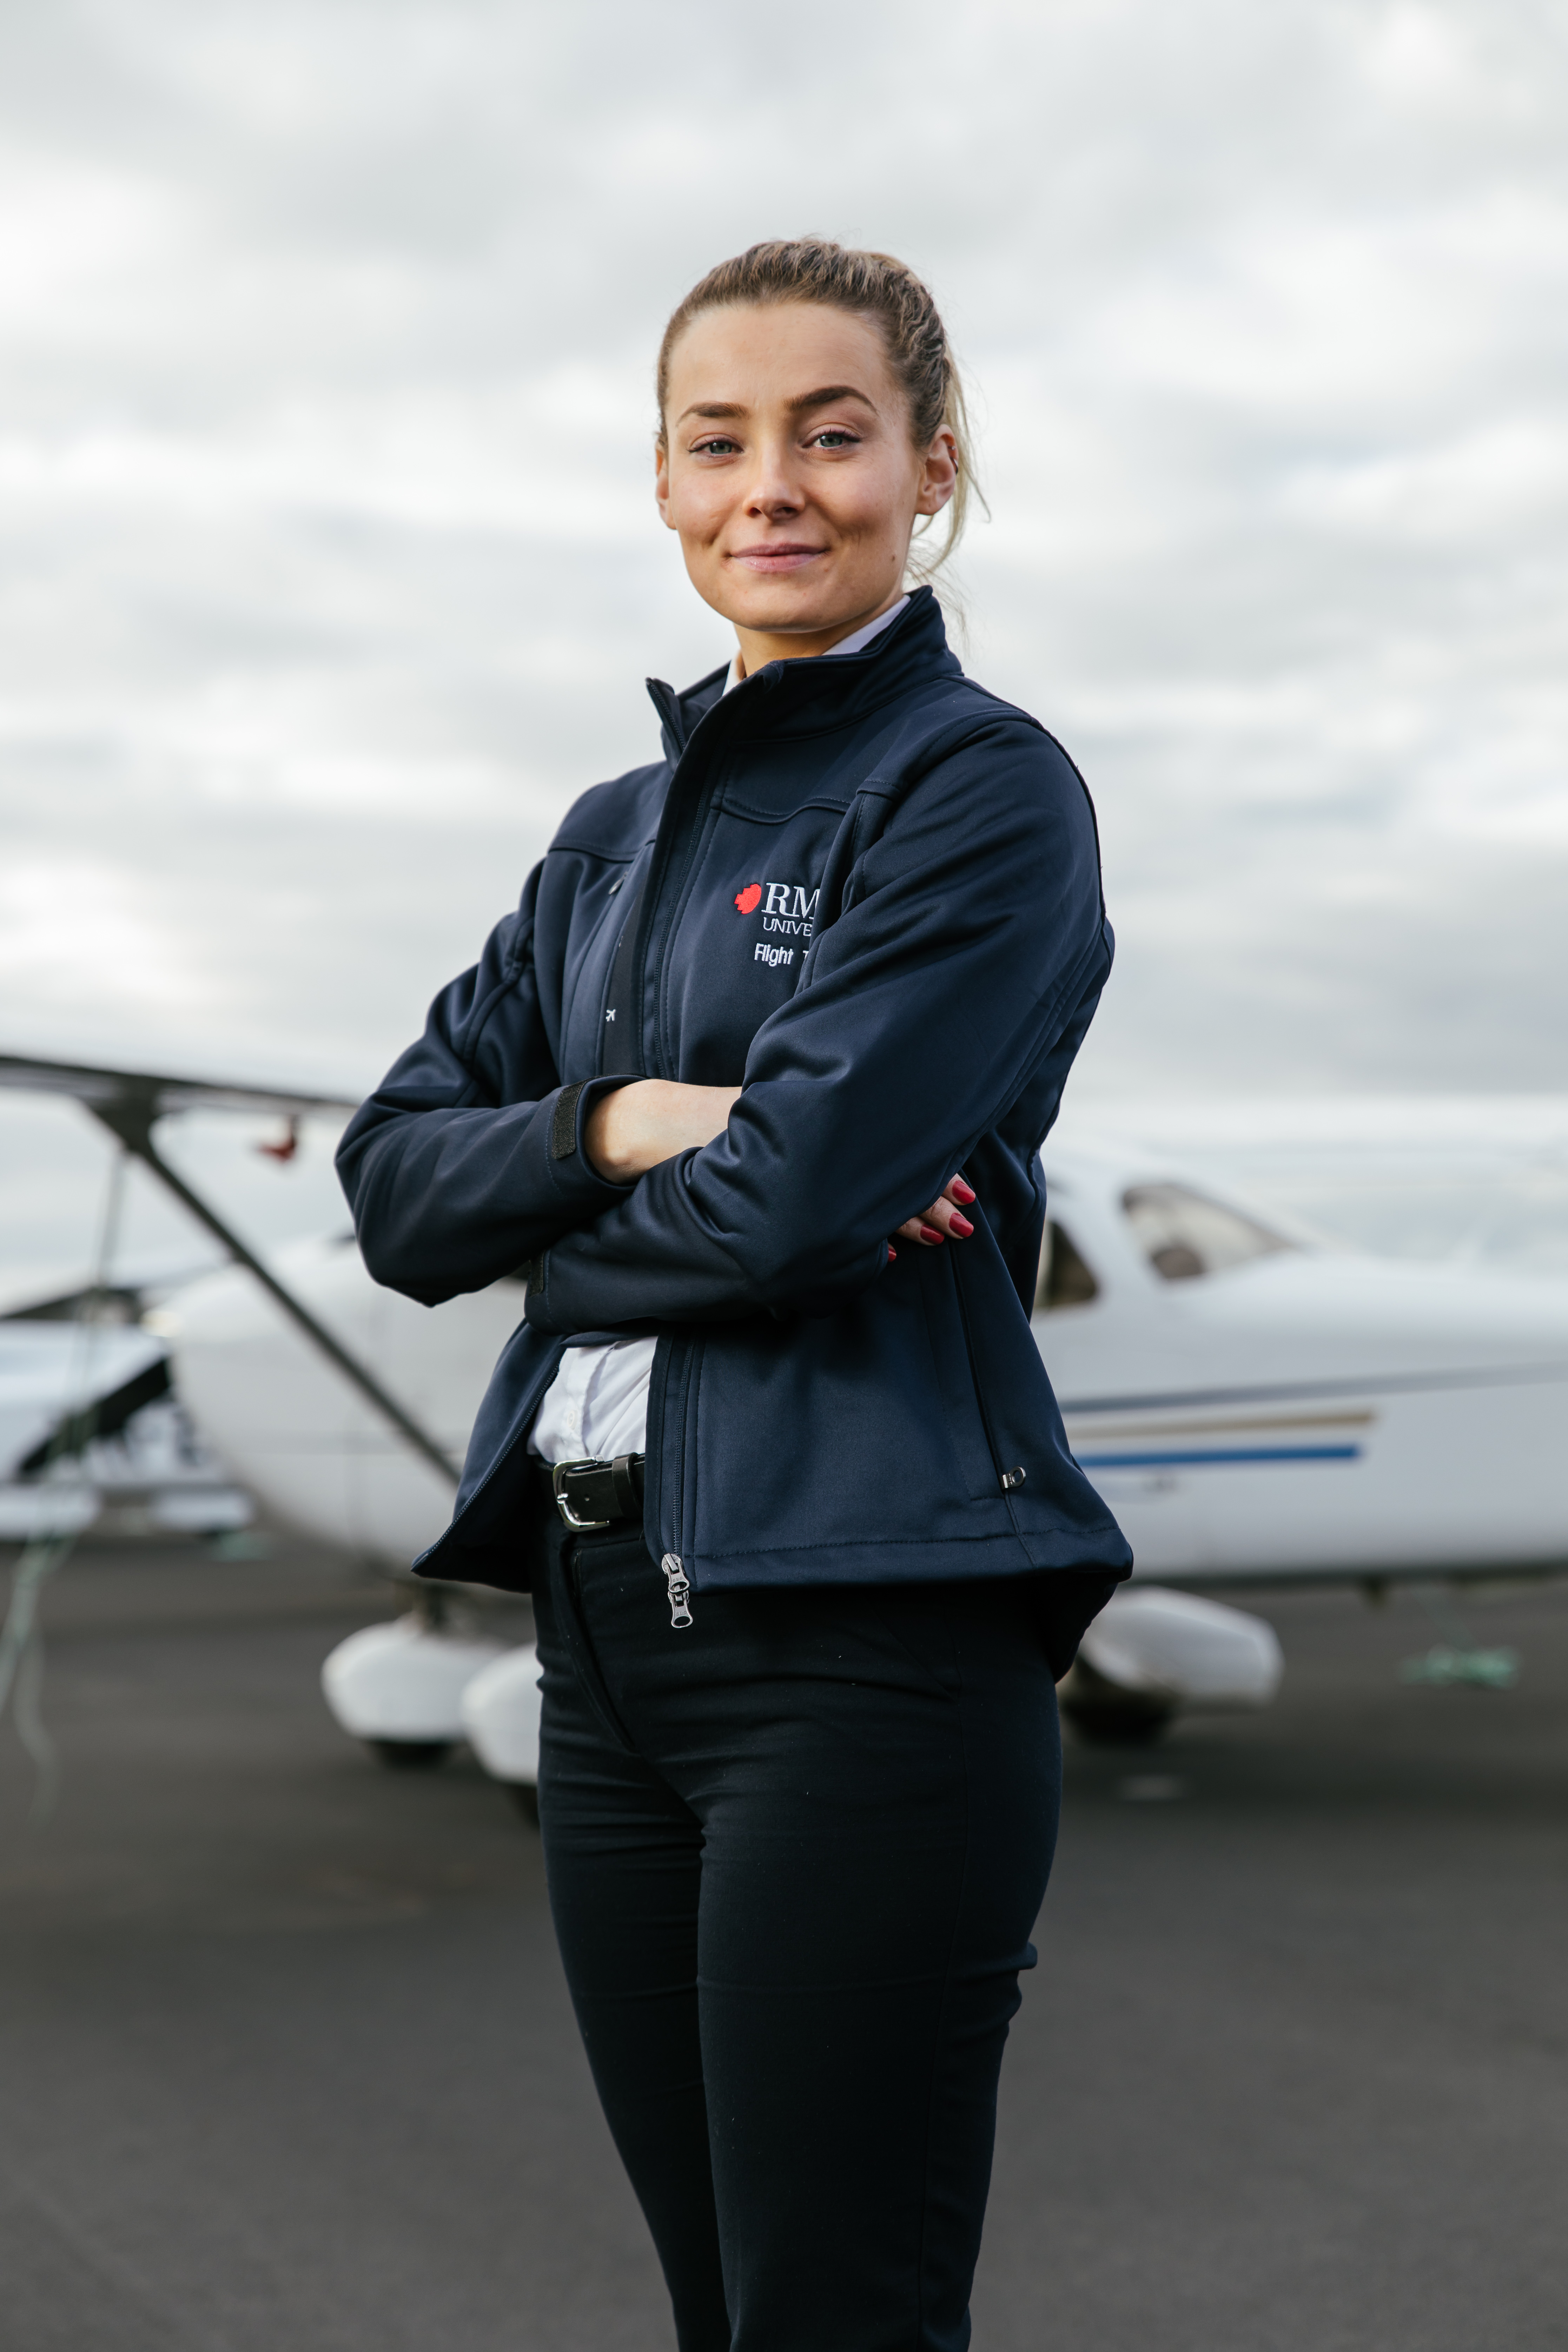 Flight training student Kerry Phillips standing in front of a plane